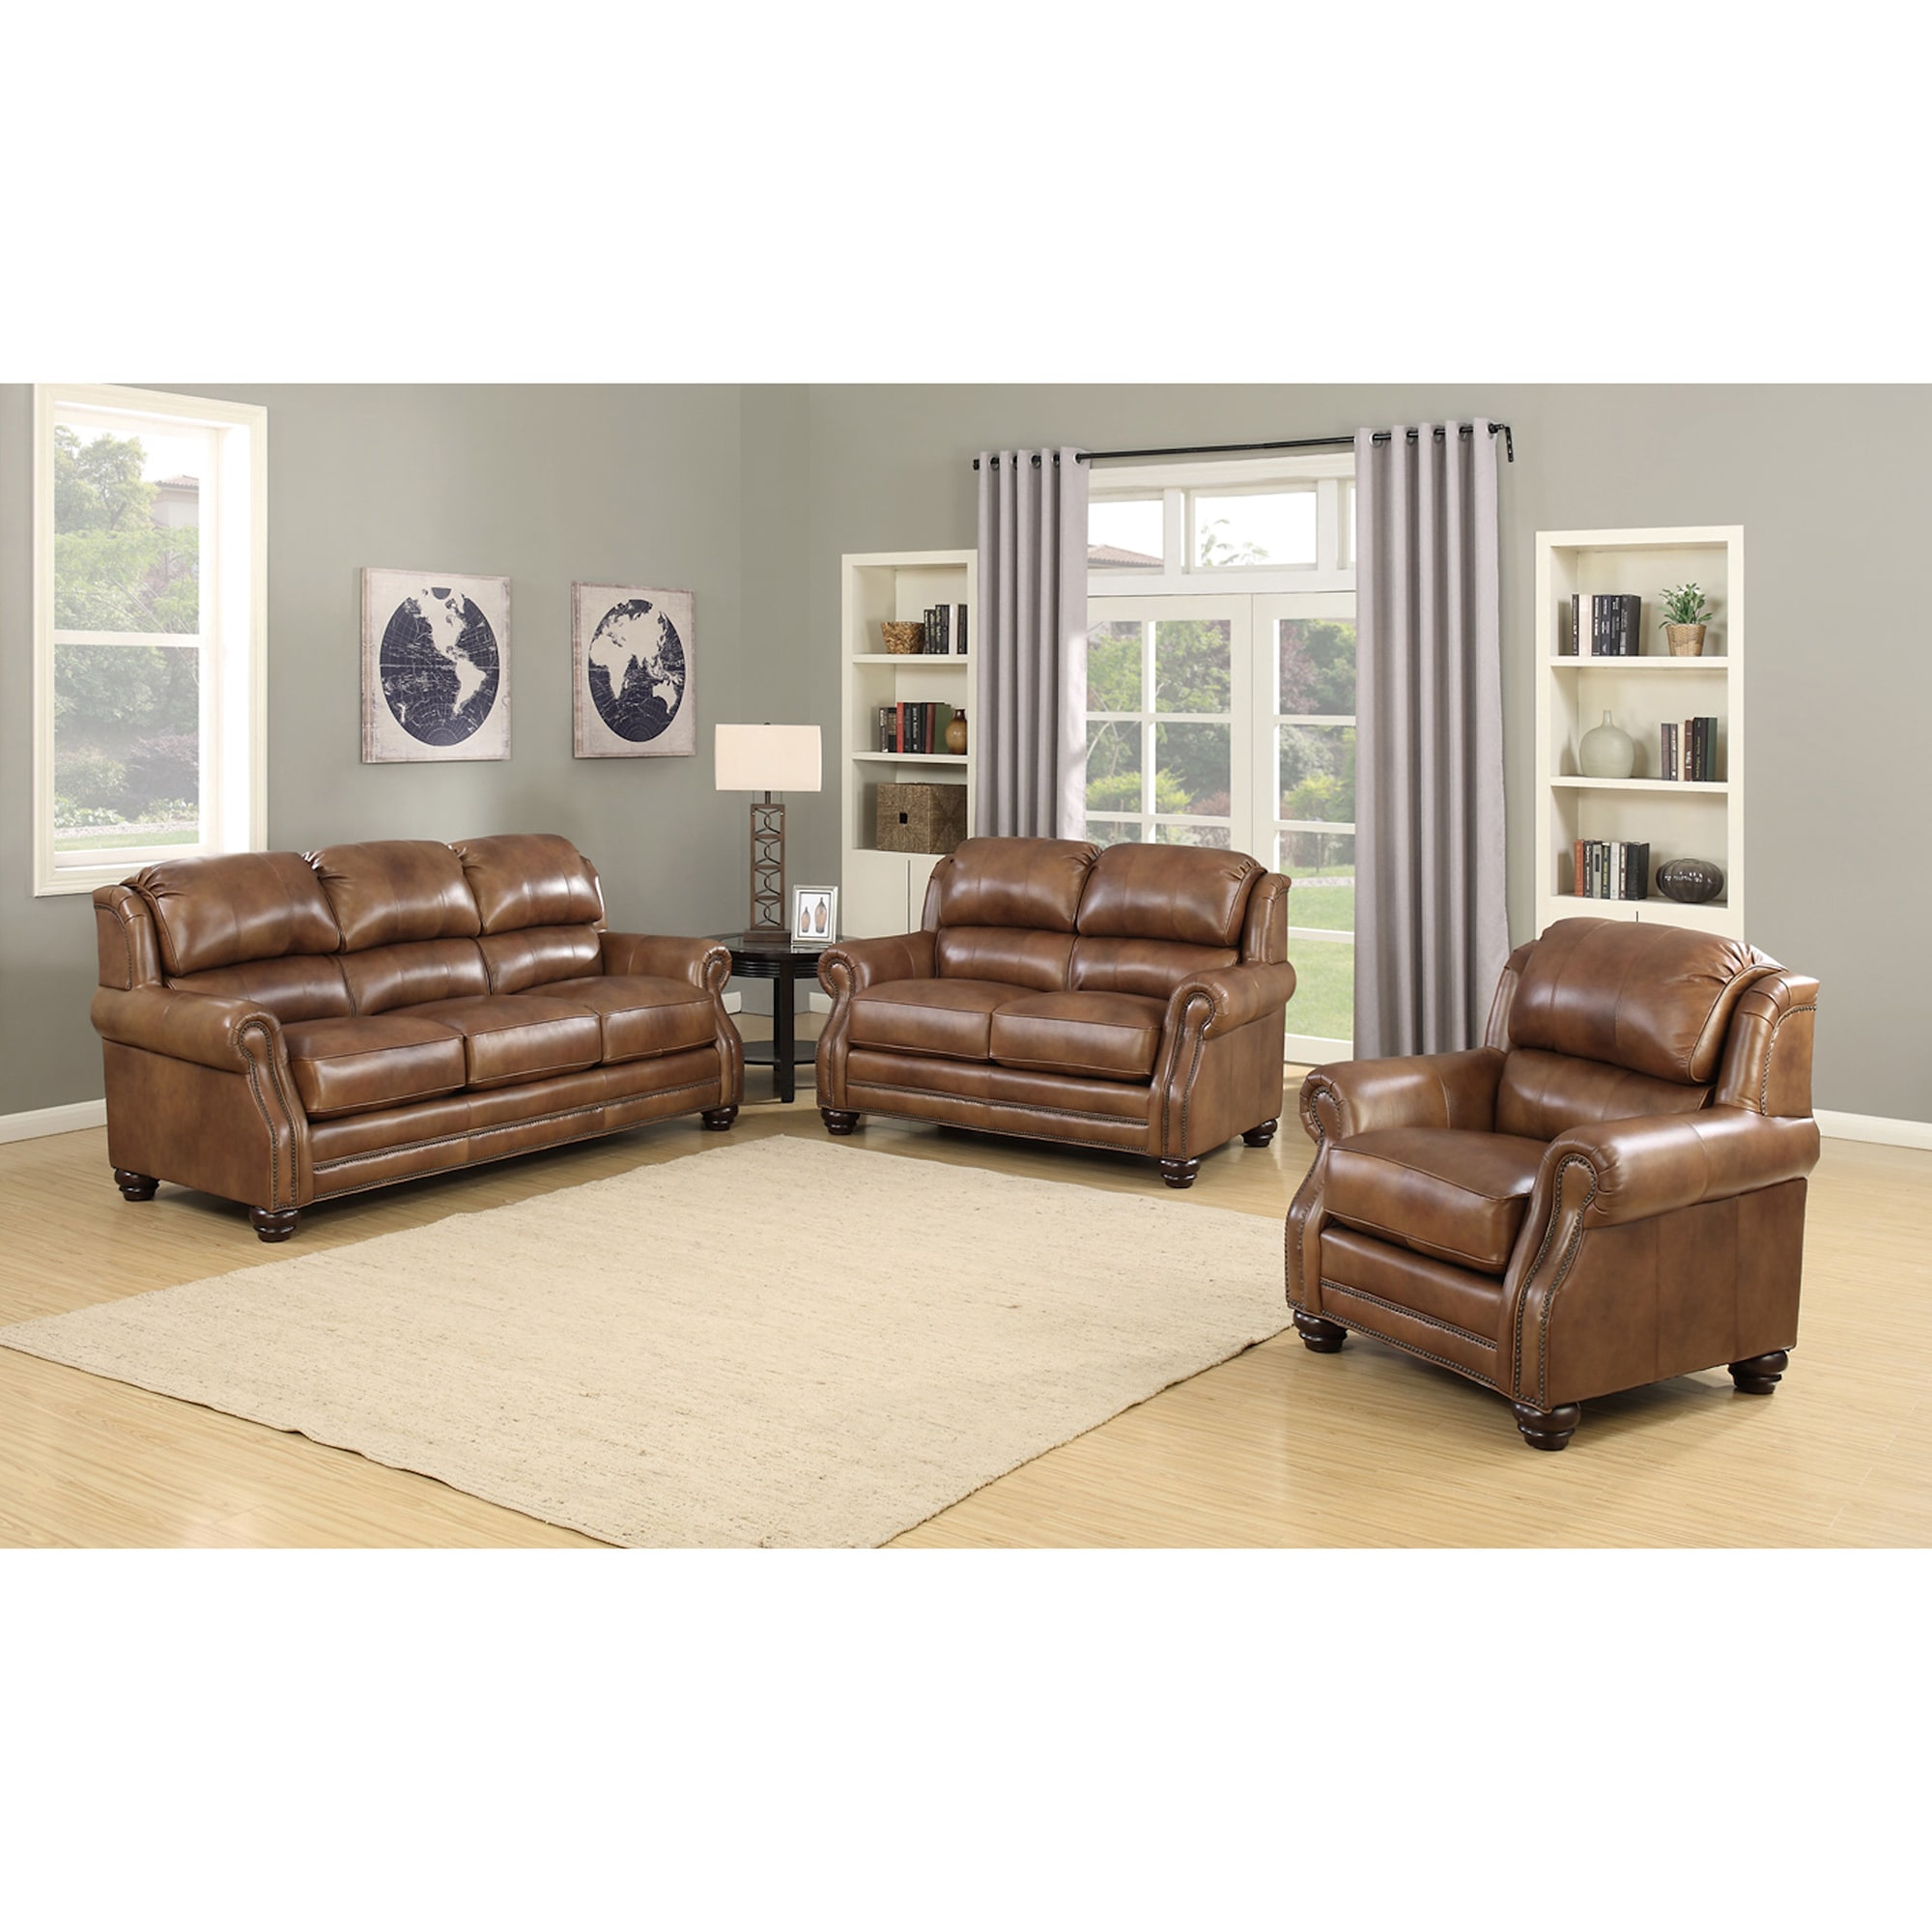 Wingback Loveseat Sofa Furniture Of America Allier Tufted